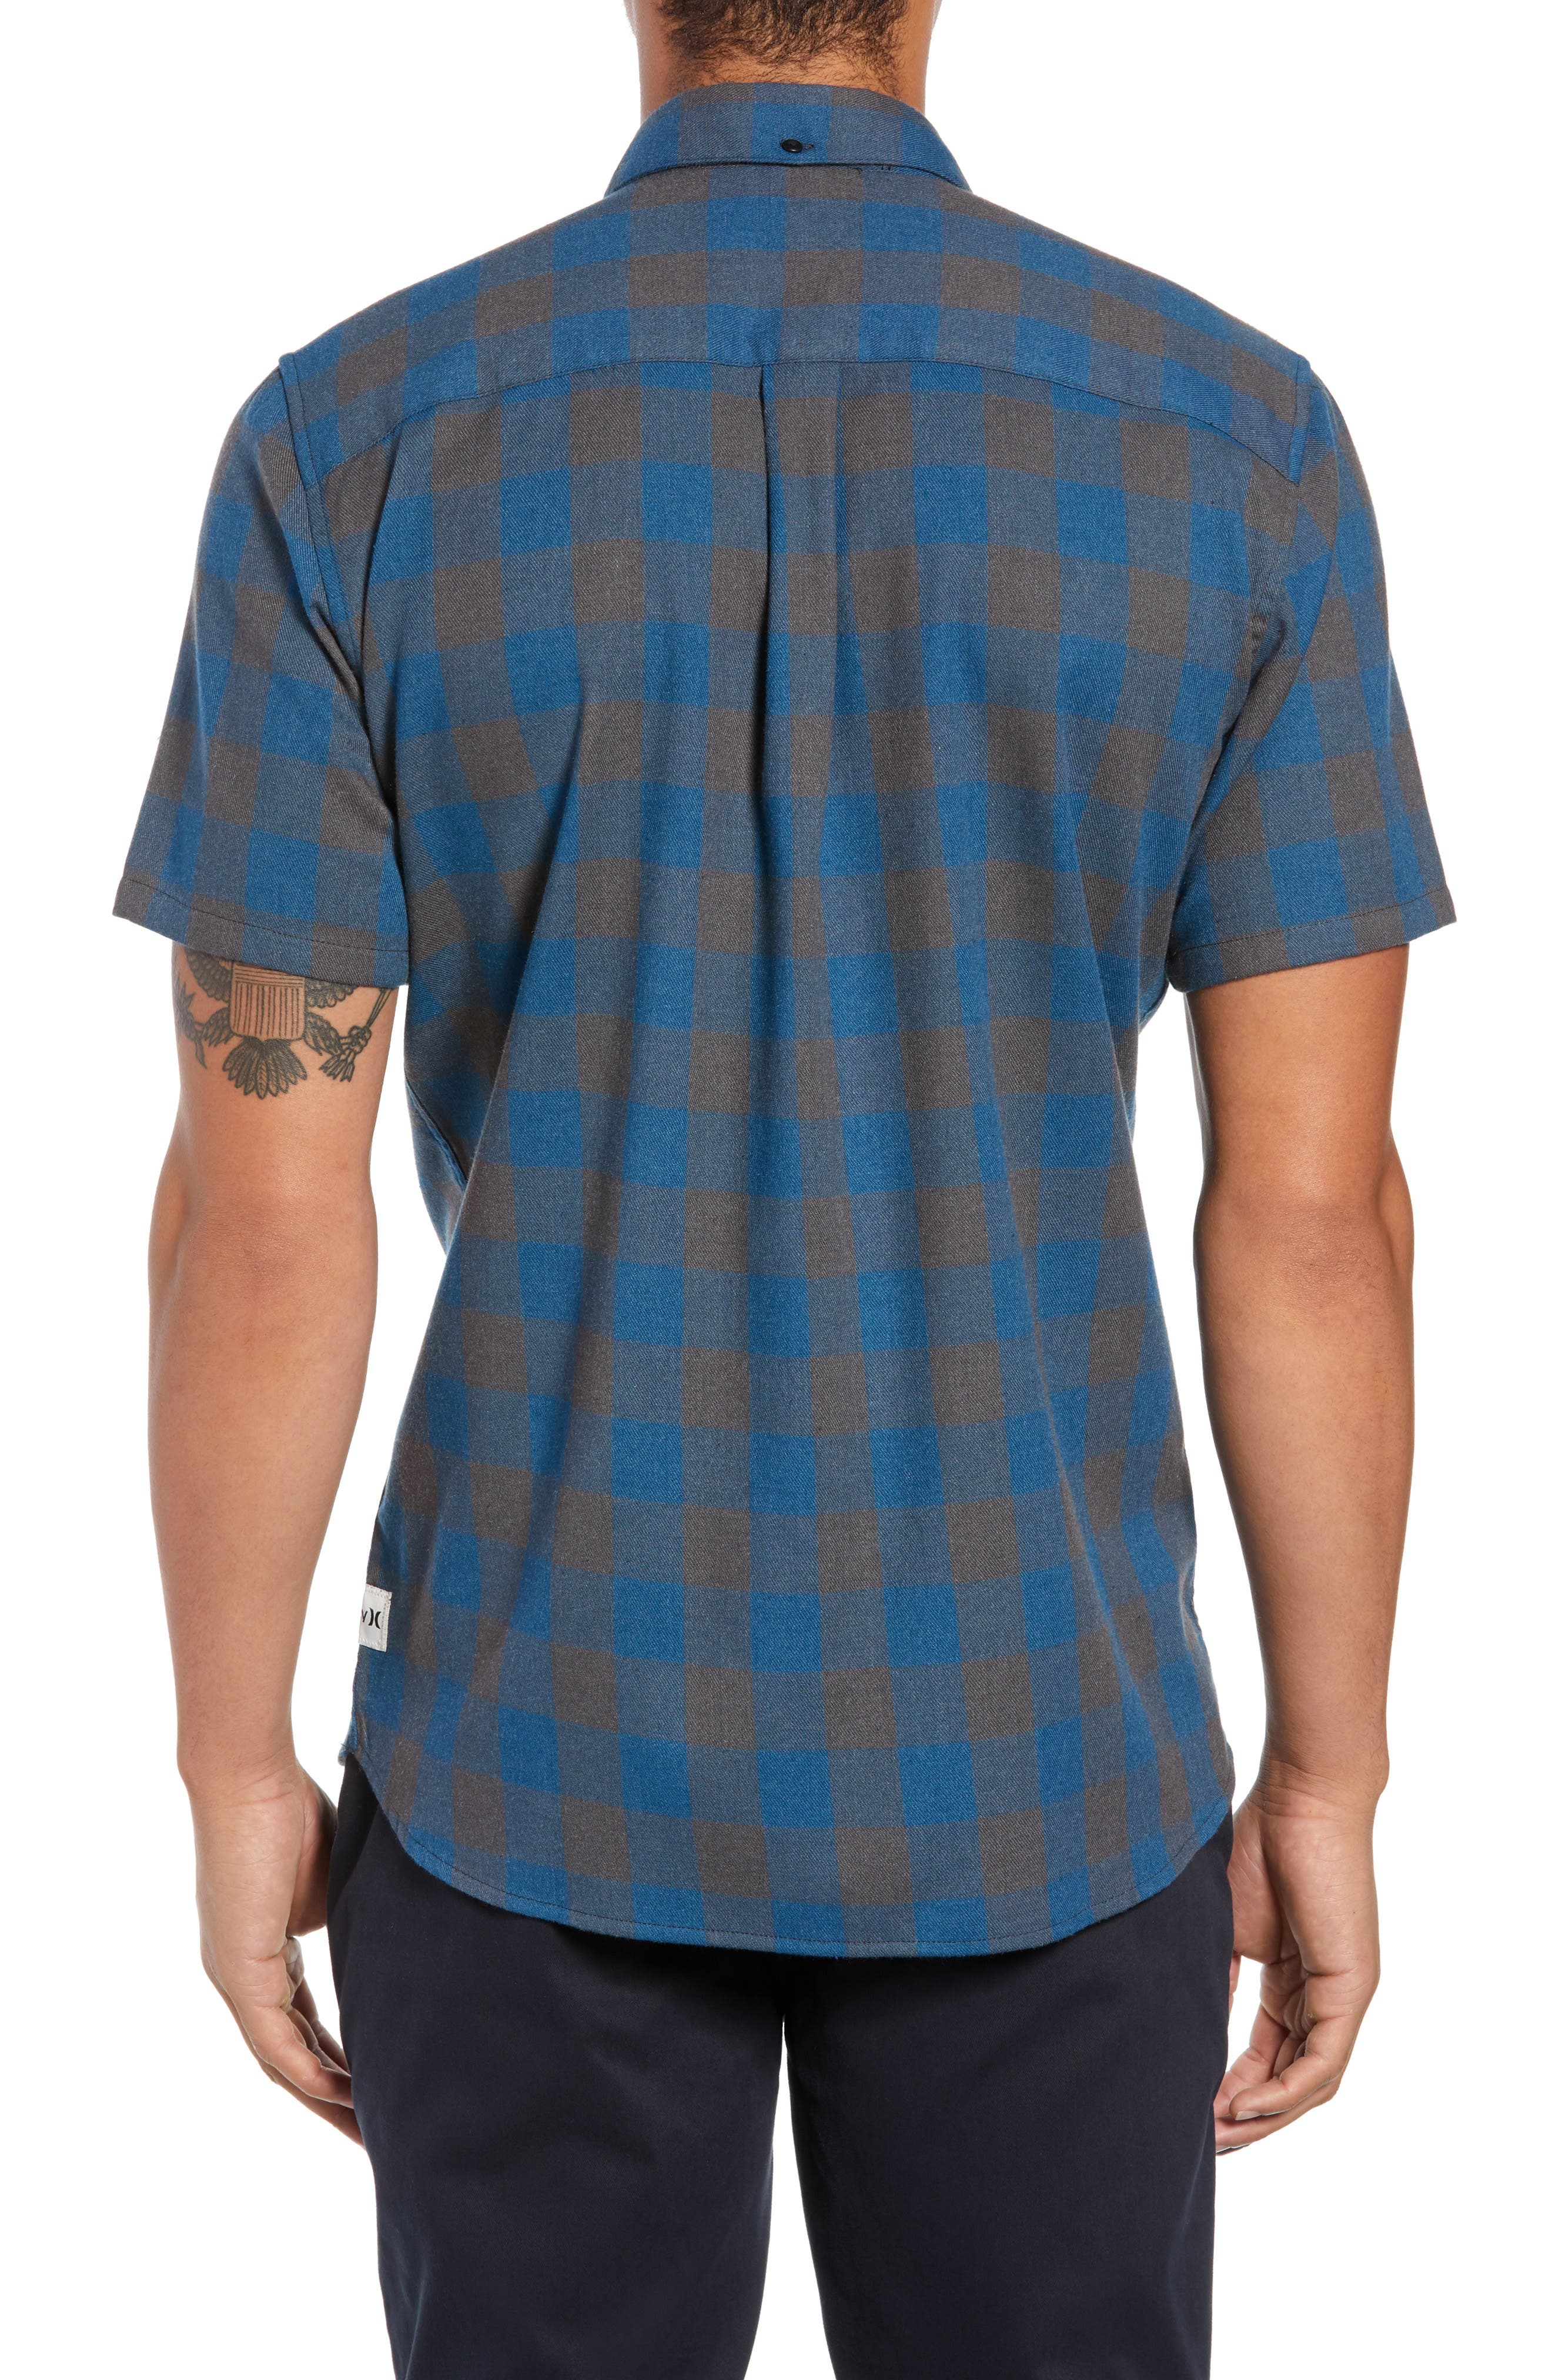 Bison Check Twill Woven Shirt,                             Alternate thumbnail 3, color,                             BLUE FORCE HEATHER